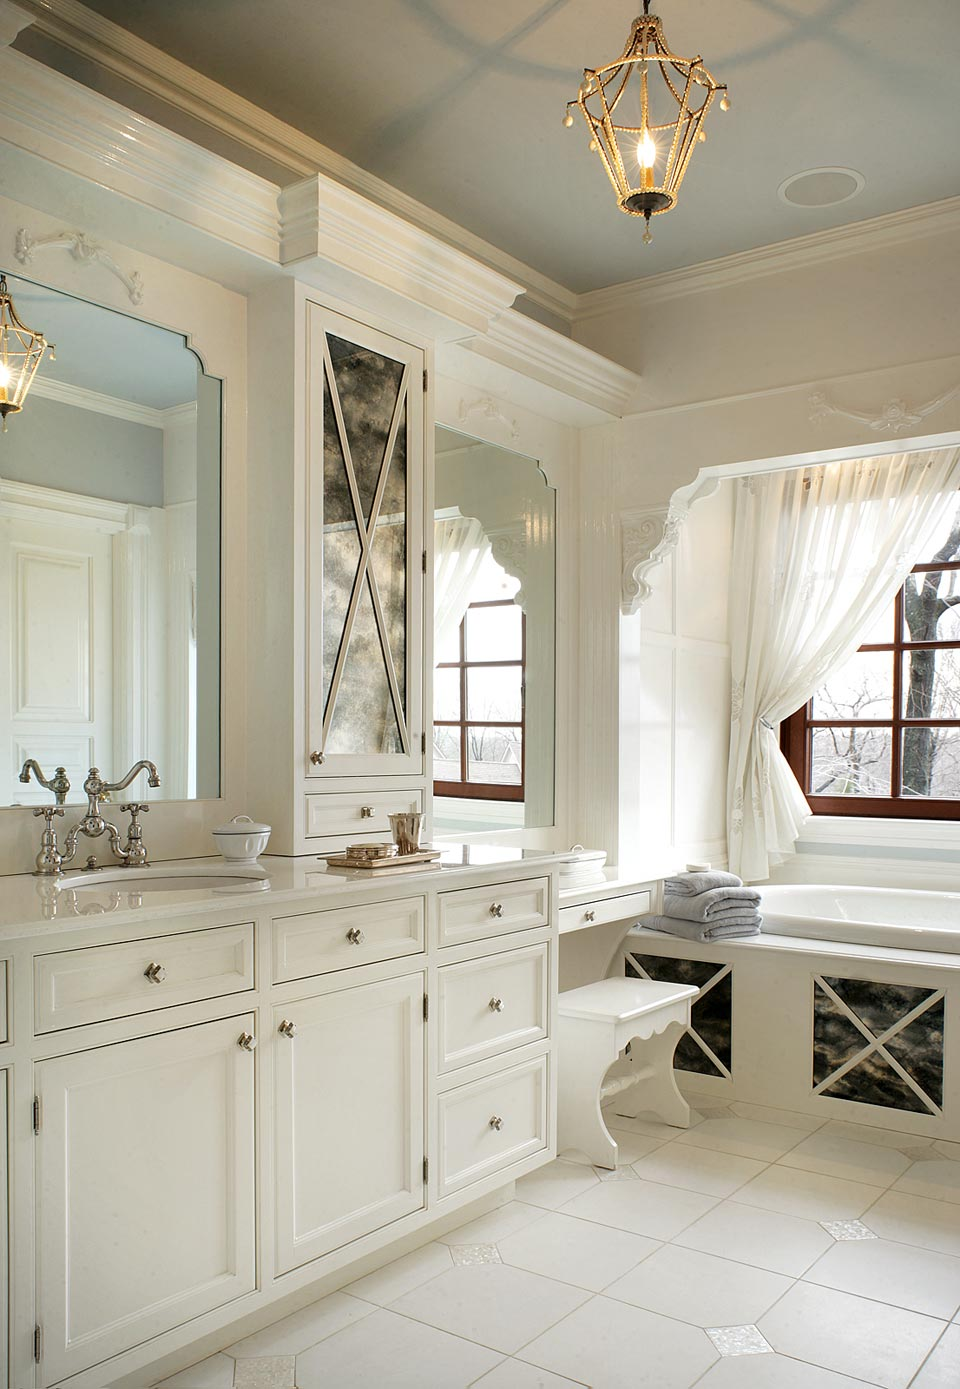 25 Traditional Bathroom Design Ideas  Decoration Love